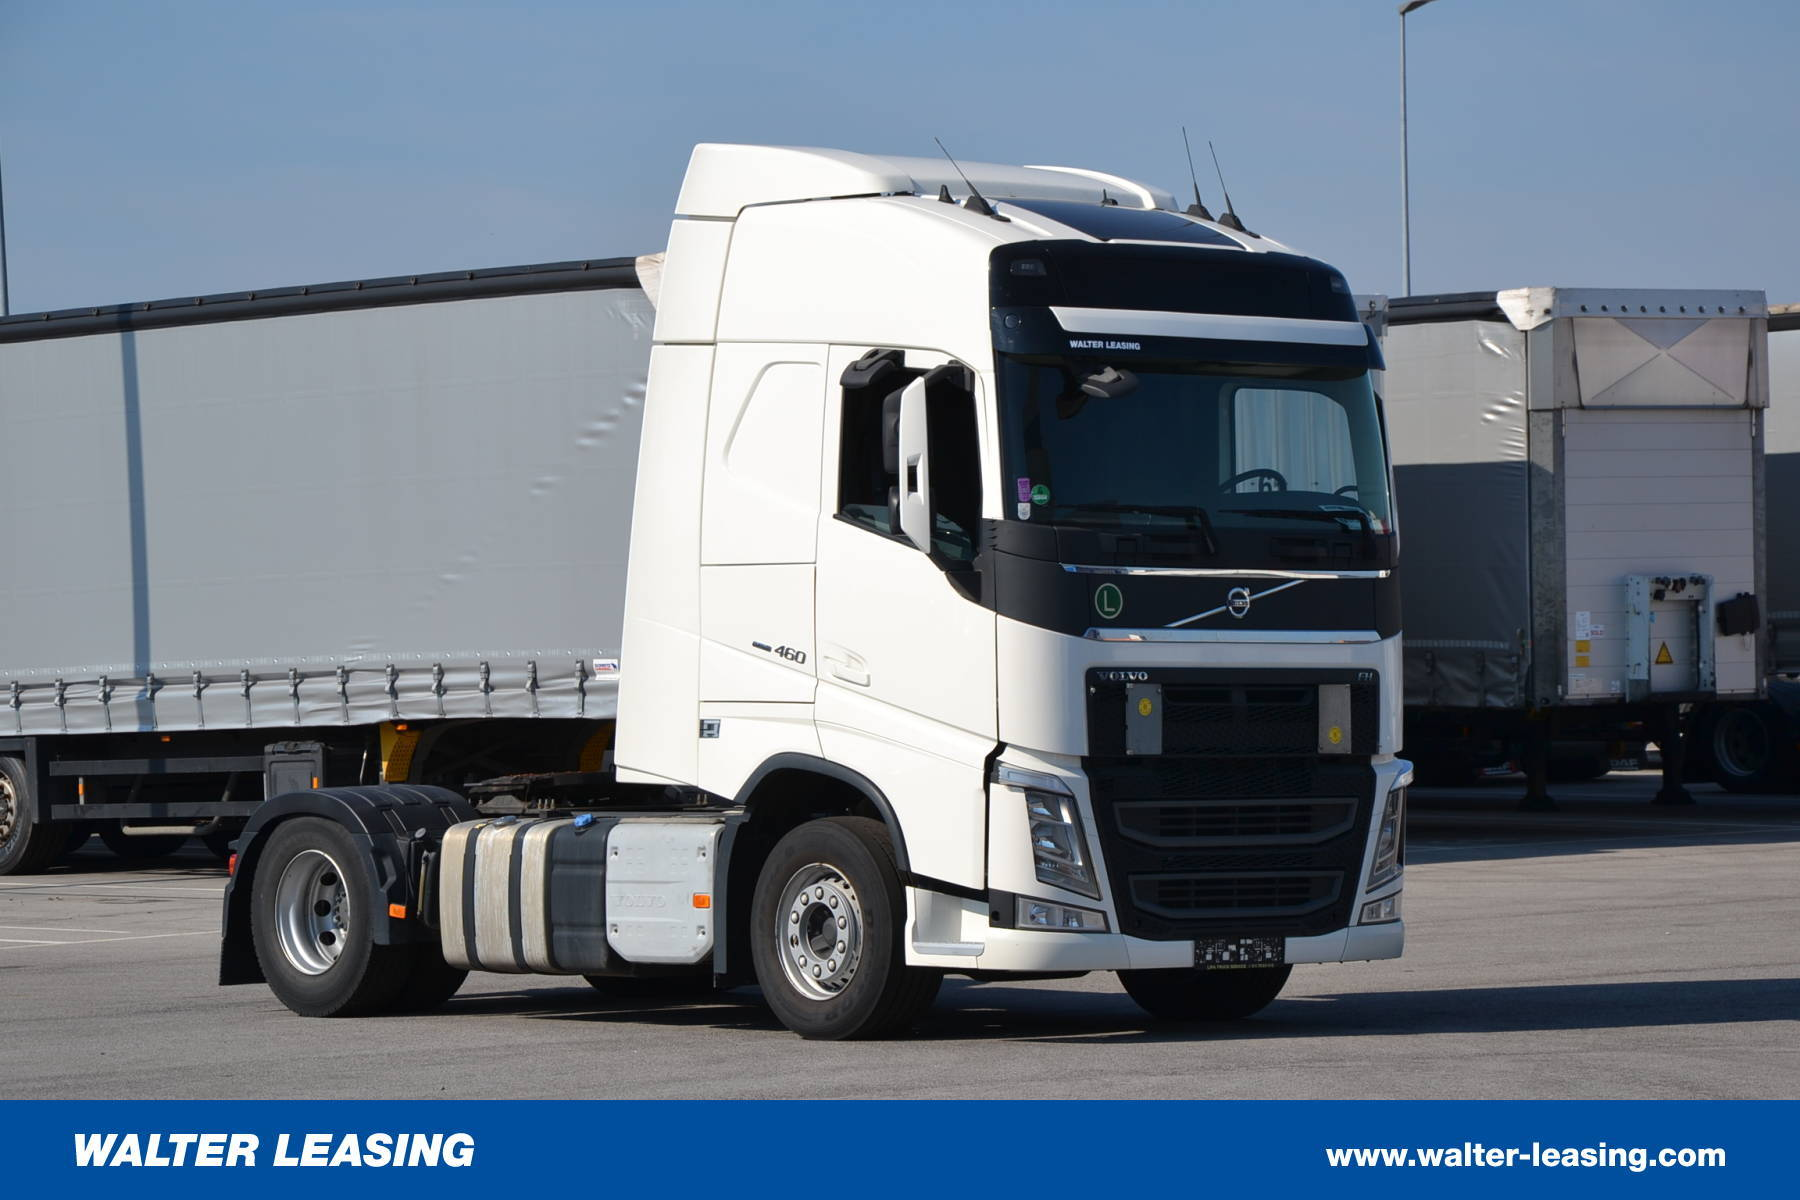 Volvo HGV Tractor Unit FH460 Used WALTER LEASING